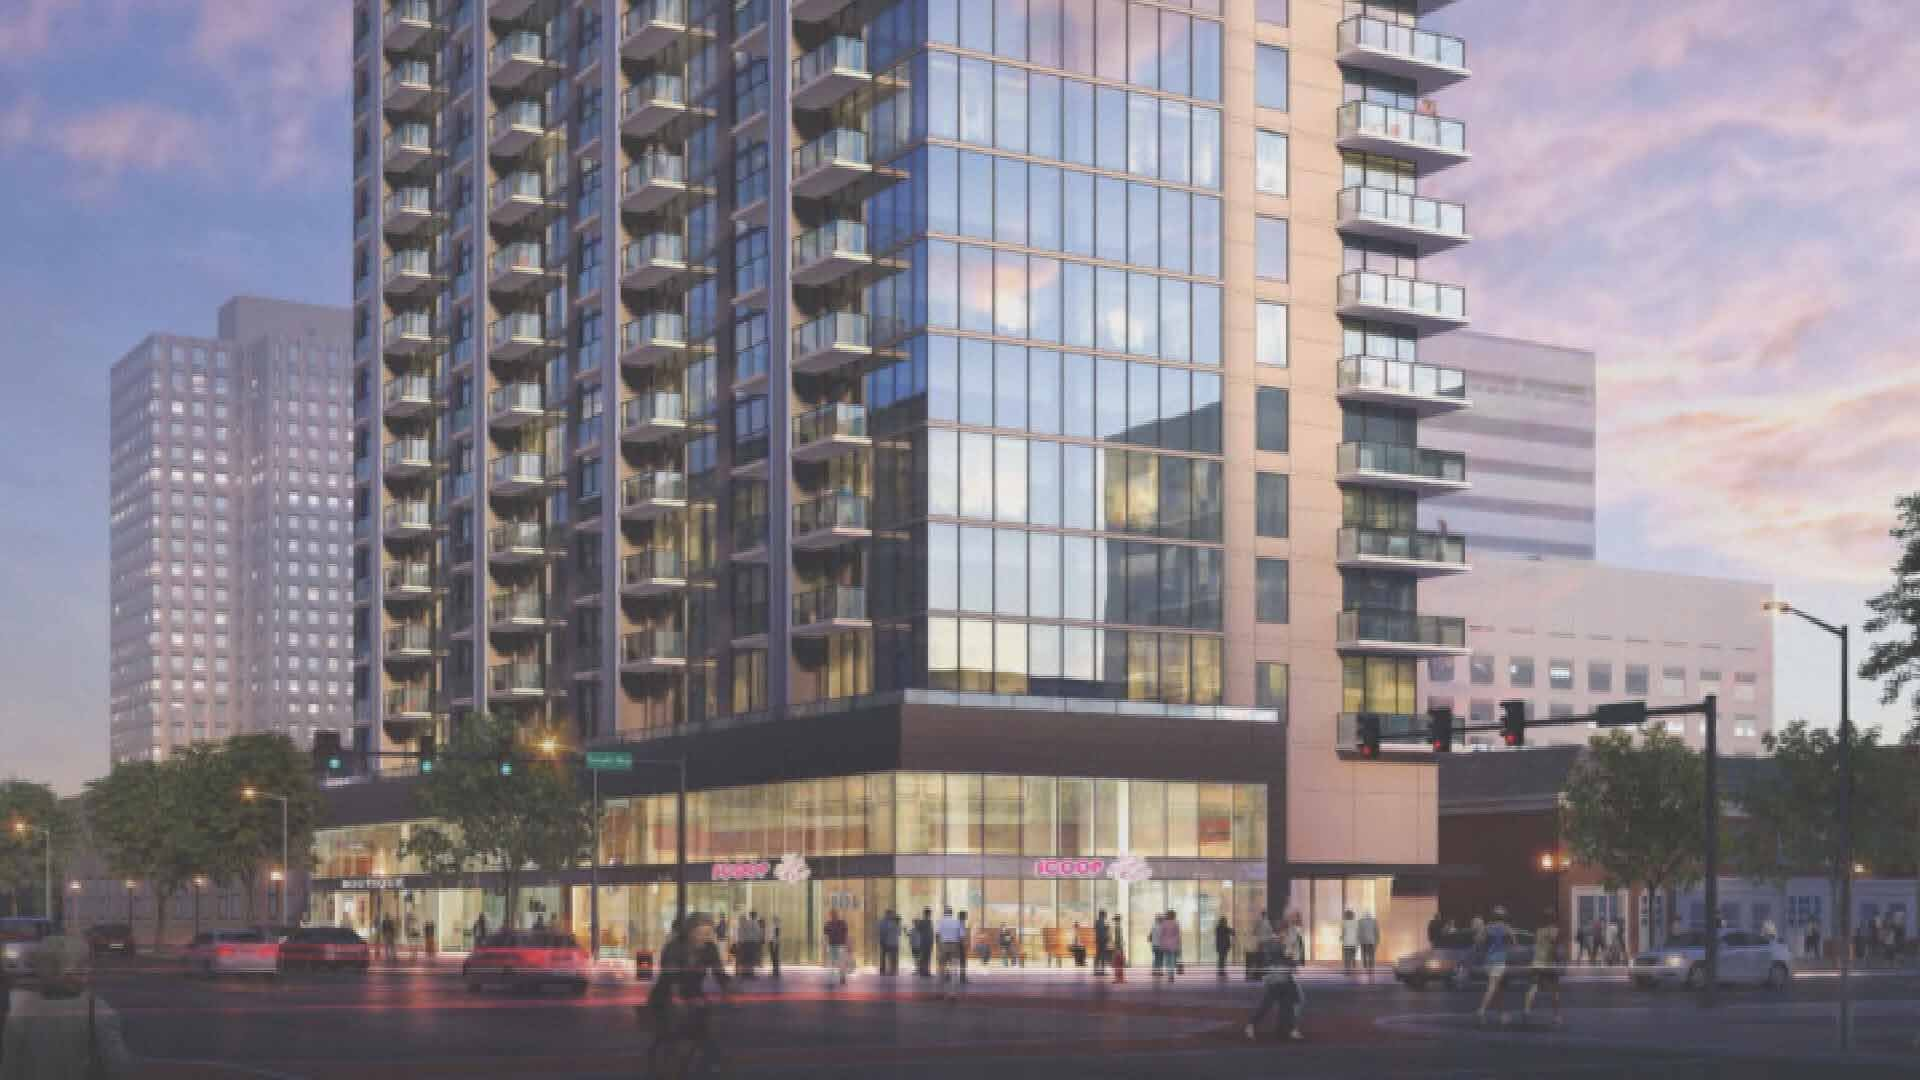 The proposed high rise at Brentwood and Forsyth in Clayton. Credit: KMOV